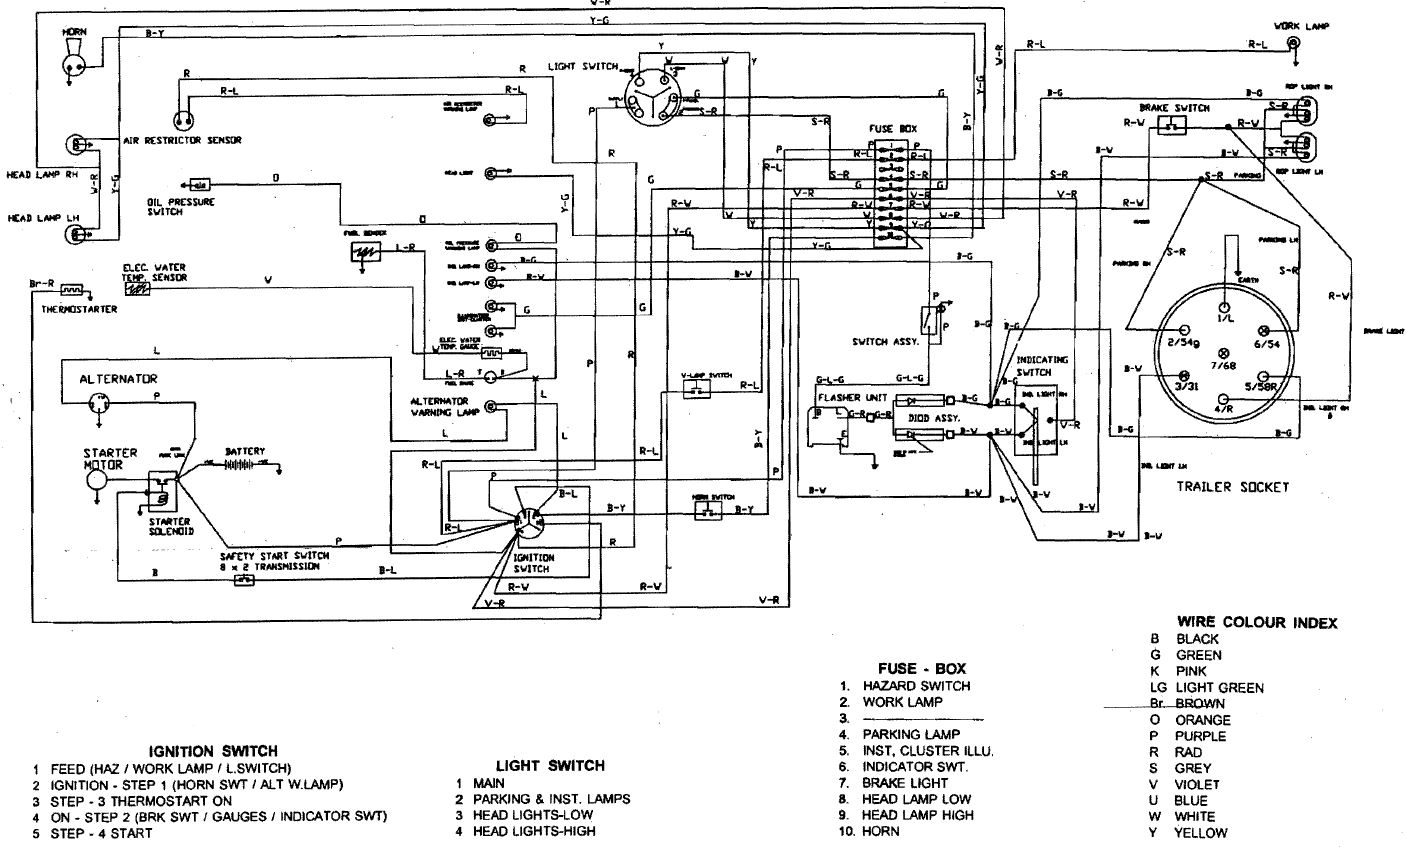 20158463319_b82d524c3d_o john deere 180 wiring diagram john deere 180 ignition system Basic Lawn Tractor Wiring Diagram at alyssarenee.co